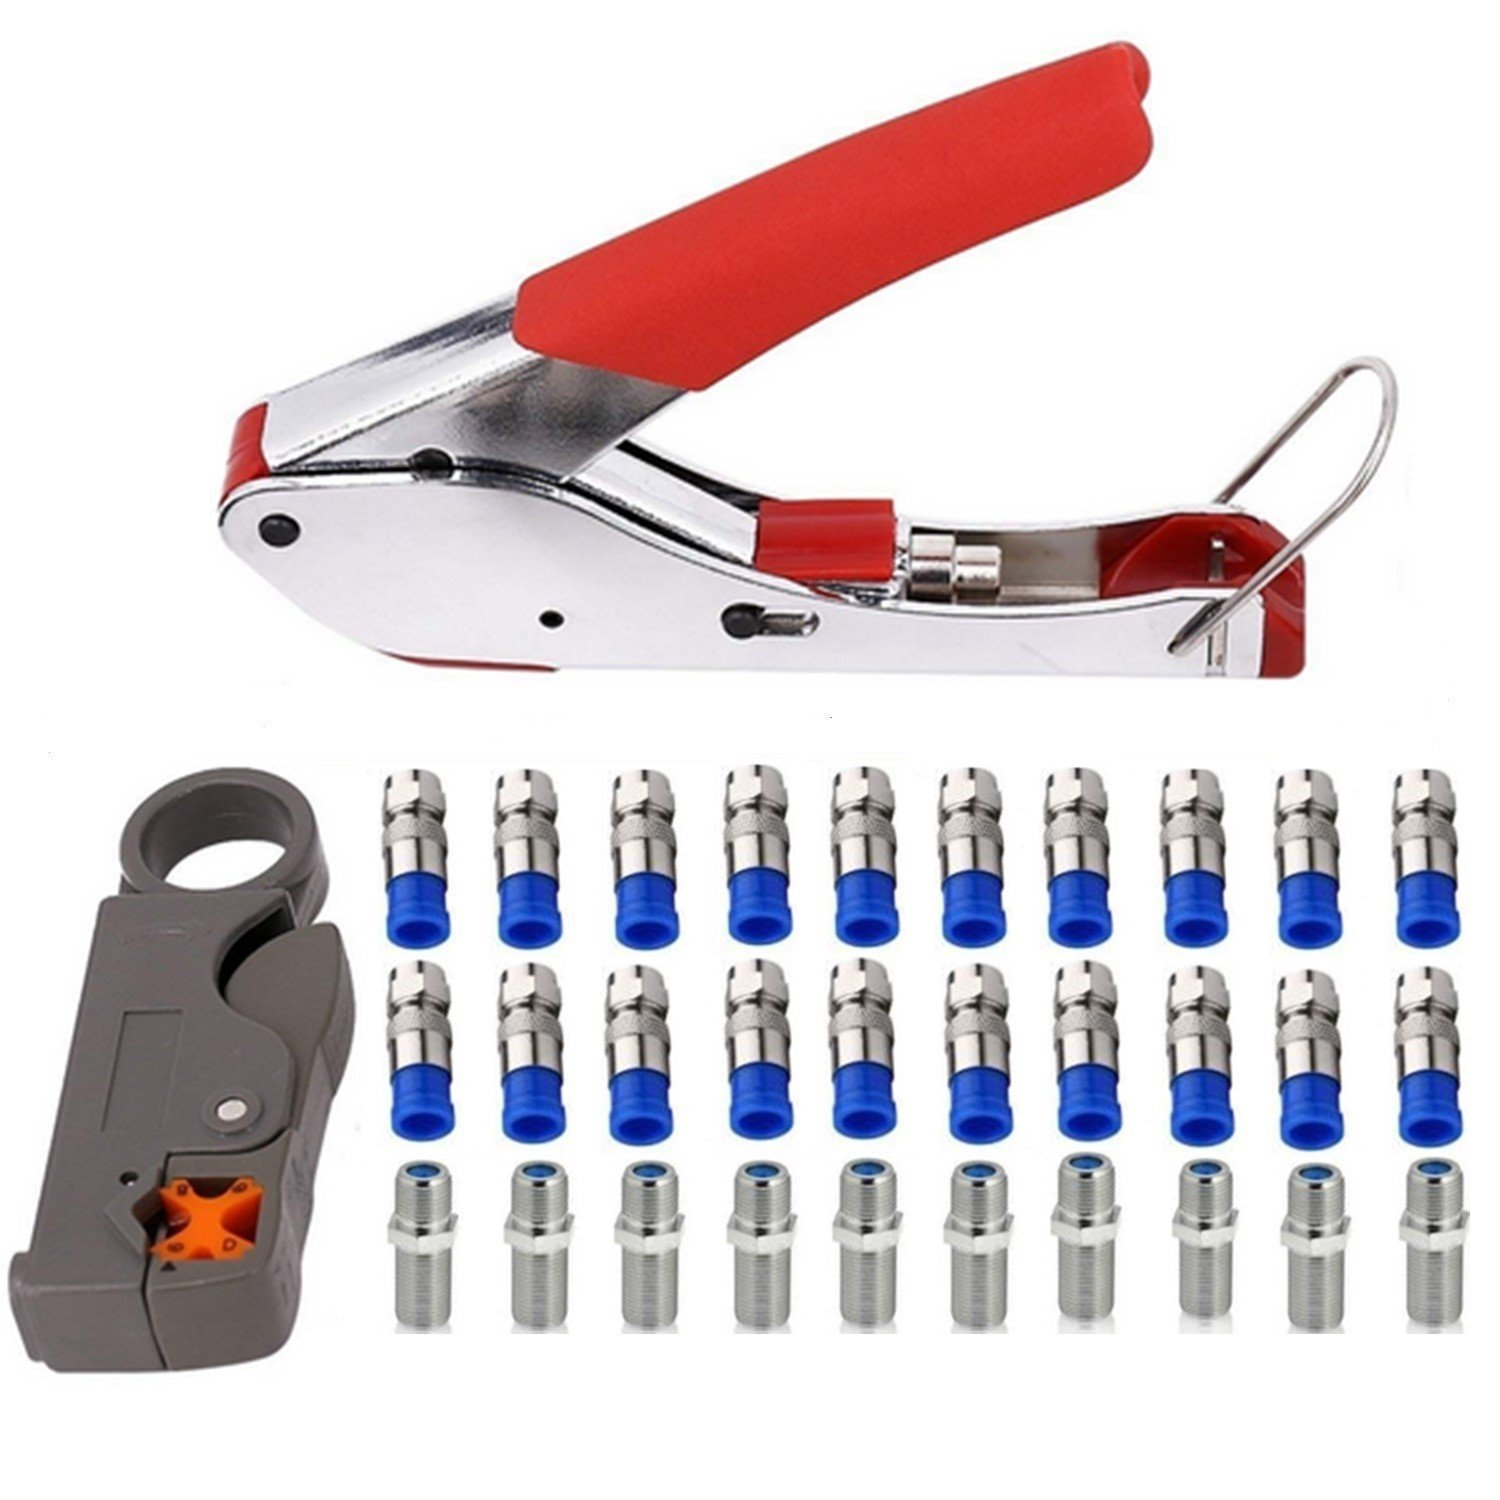 Coax Crimper Tool Kit Coaxial Compression Stripping Tool Cable Wire Stripper with 20 PCS F Male and 10 PCS Female to Female RG6 Connectors